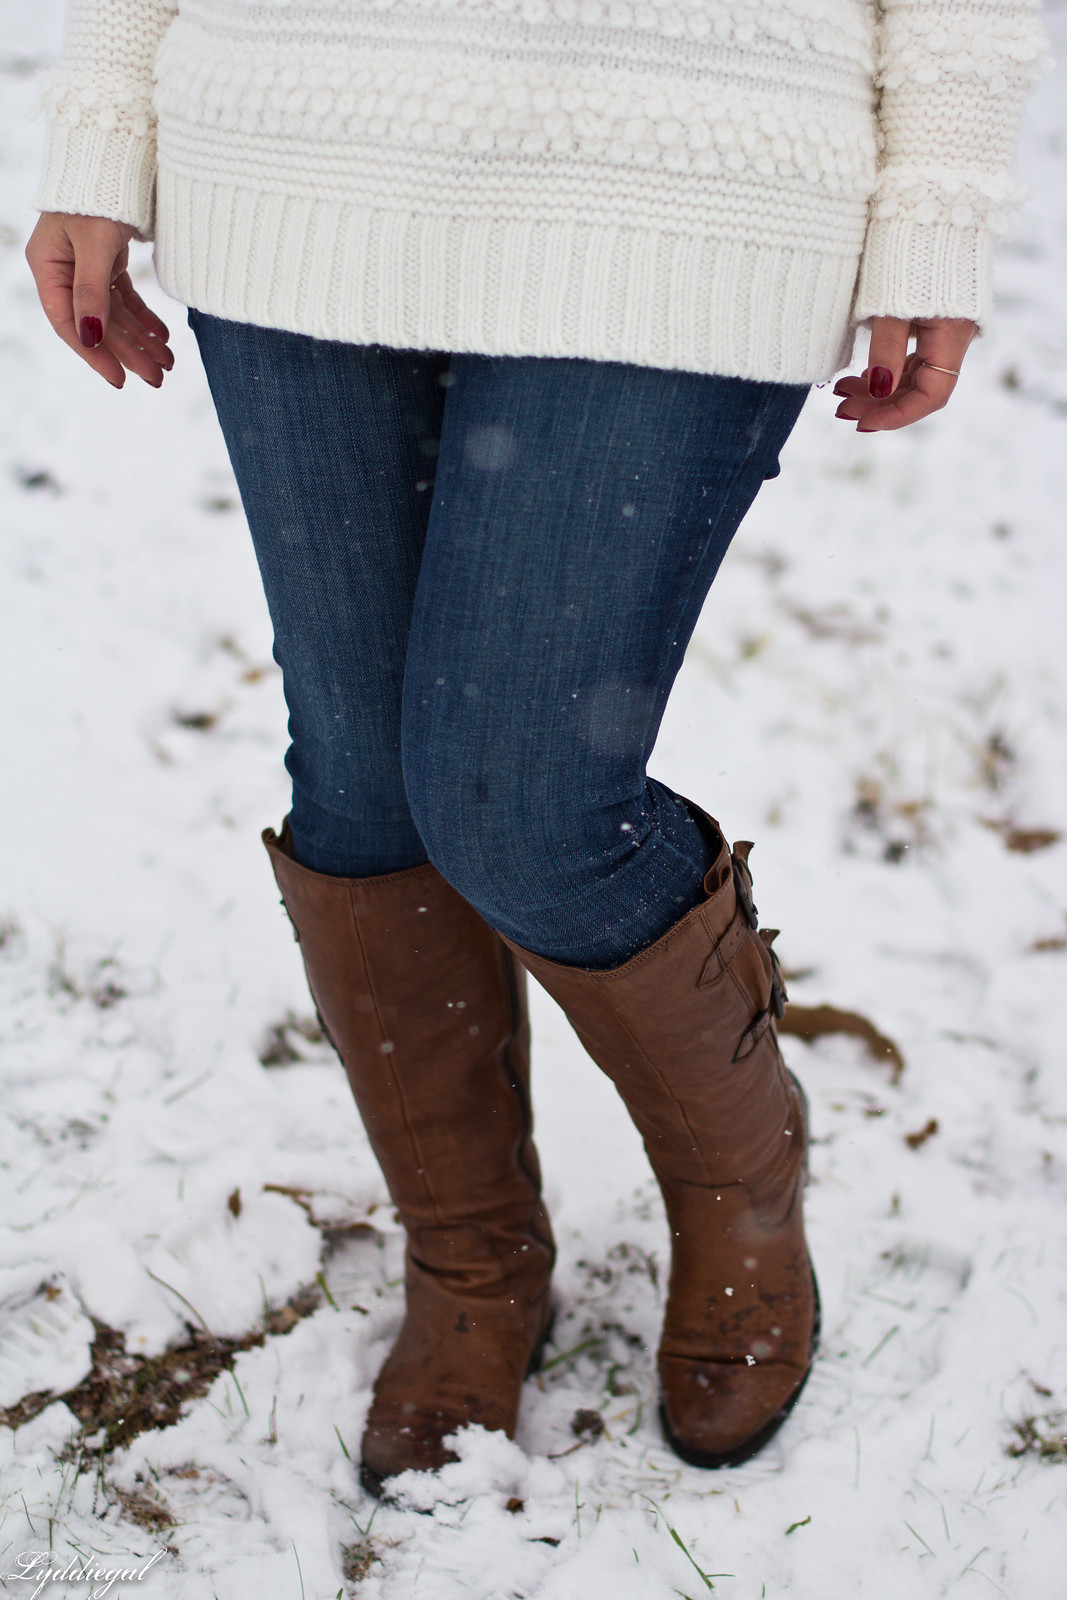 loft white sweater, brown leather boots, pom pom hat, tree hunt outfit-18.jpg